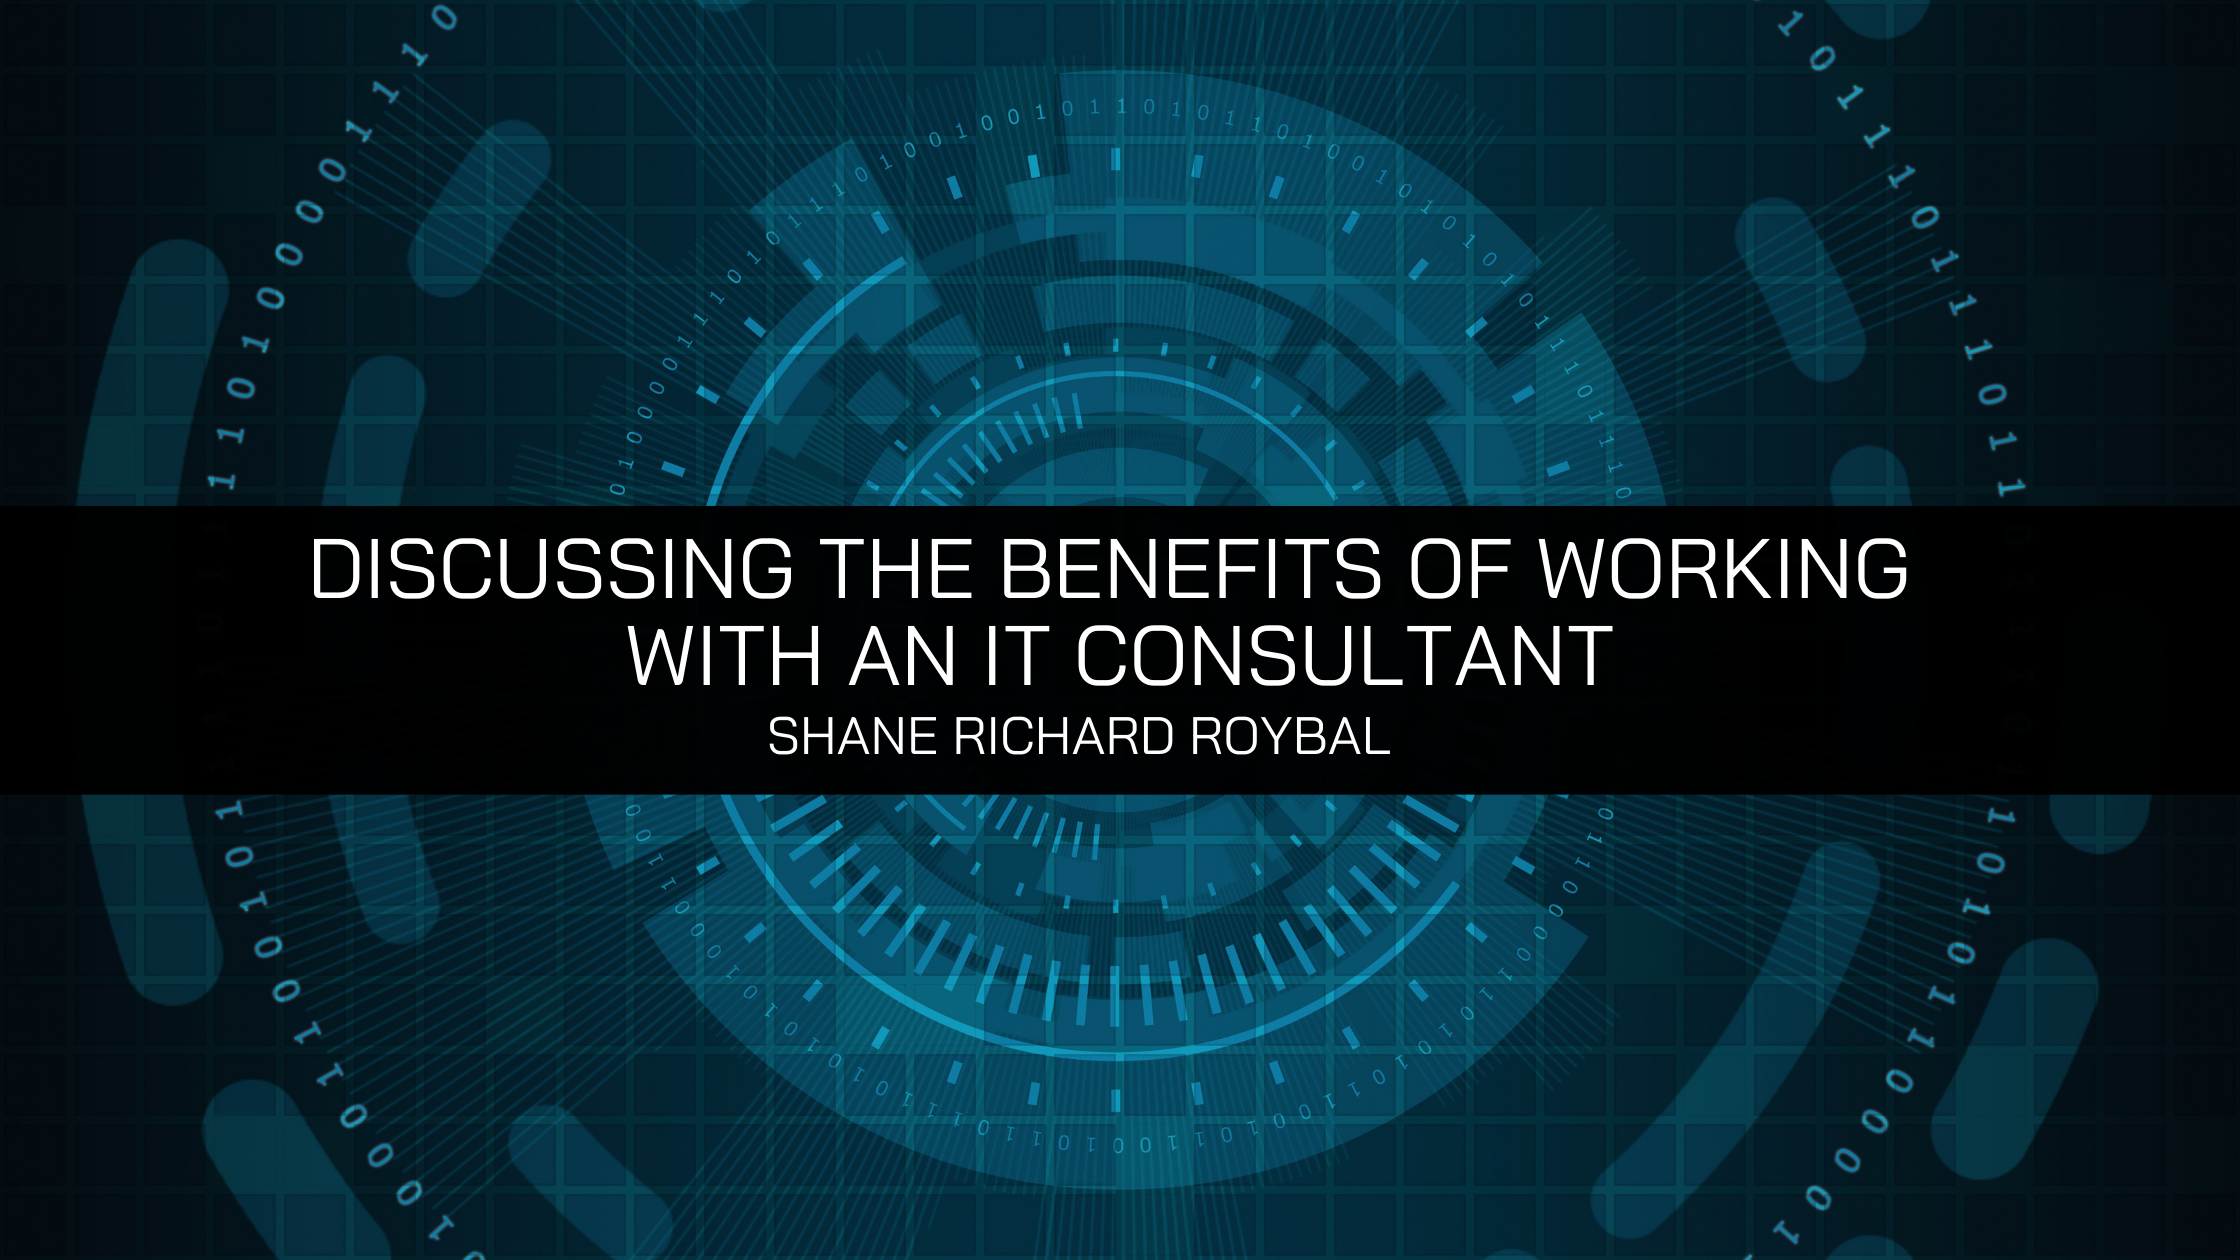 With Many Companies Looking for Help with their Technology Needs, Shane Richard Roybal Is Here to Discuss the Benefits of Working with an IT Consultant